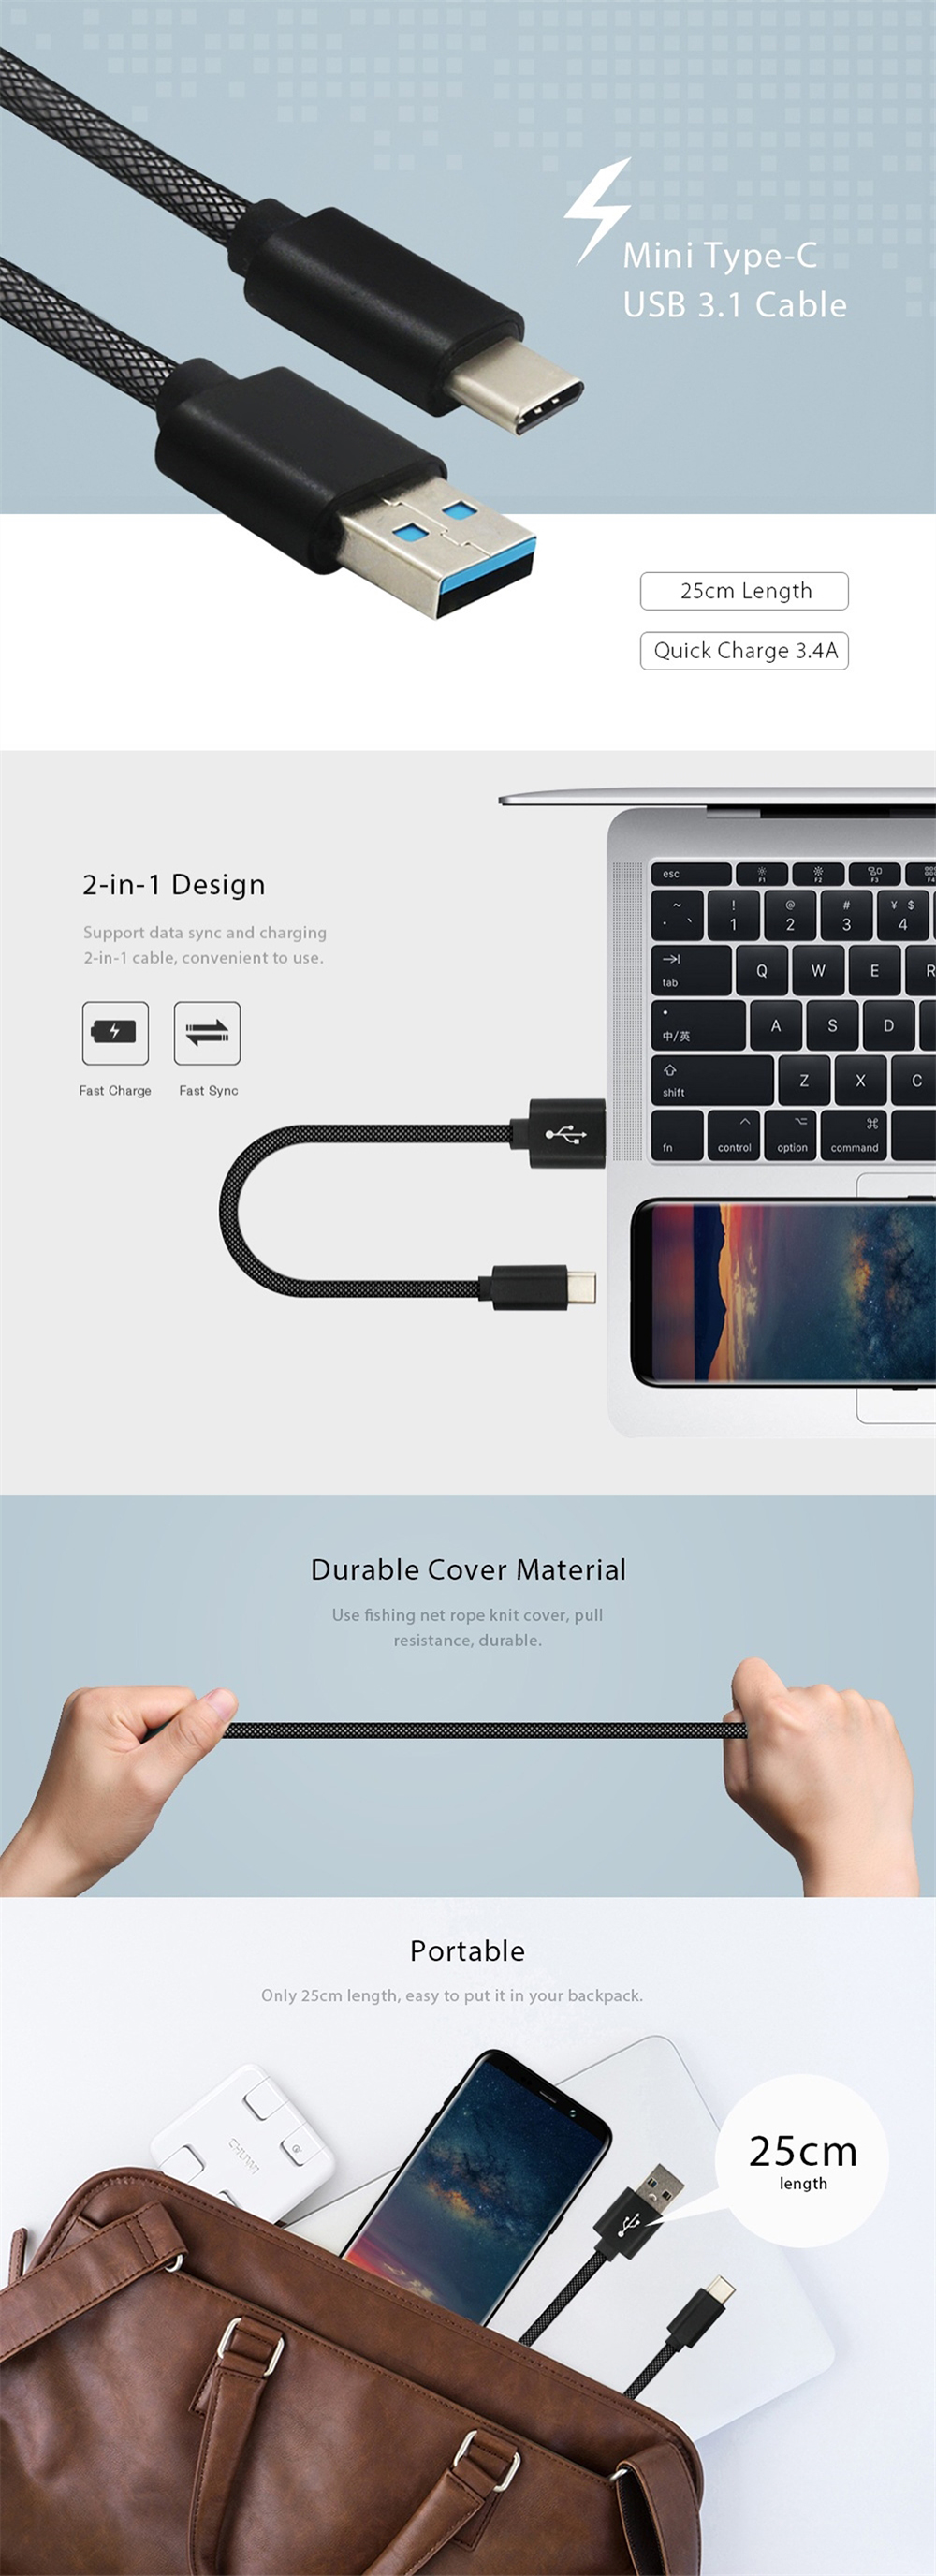 3.4A Quick Charge USB 3.1 Type-C Charging / Data Transfer Cable (25cm)